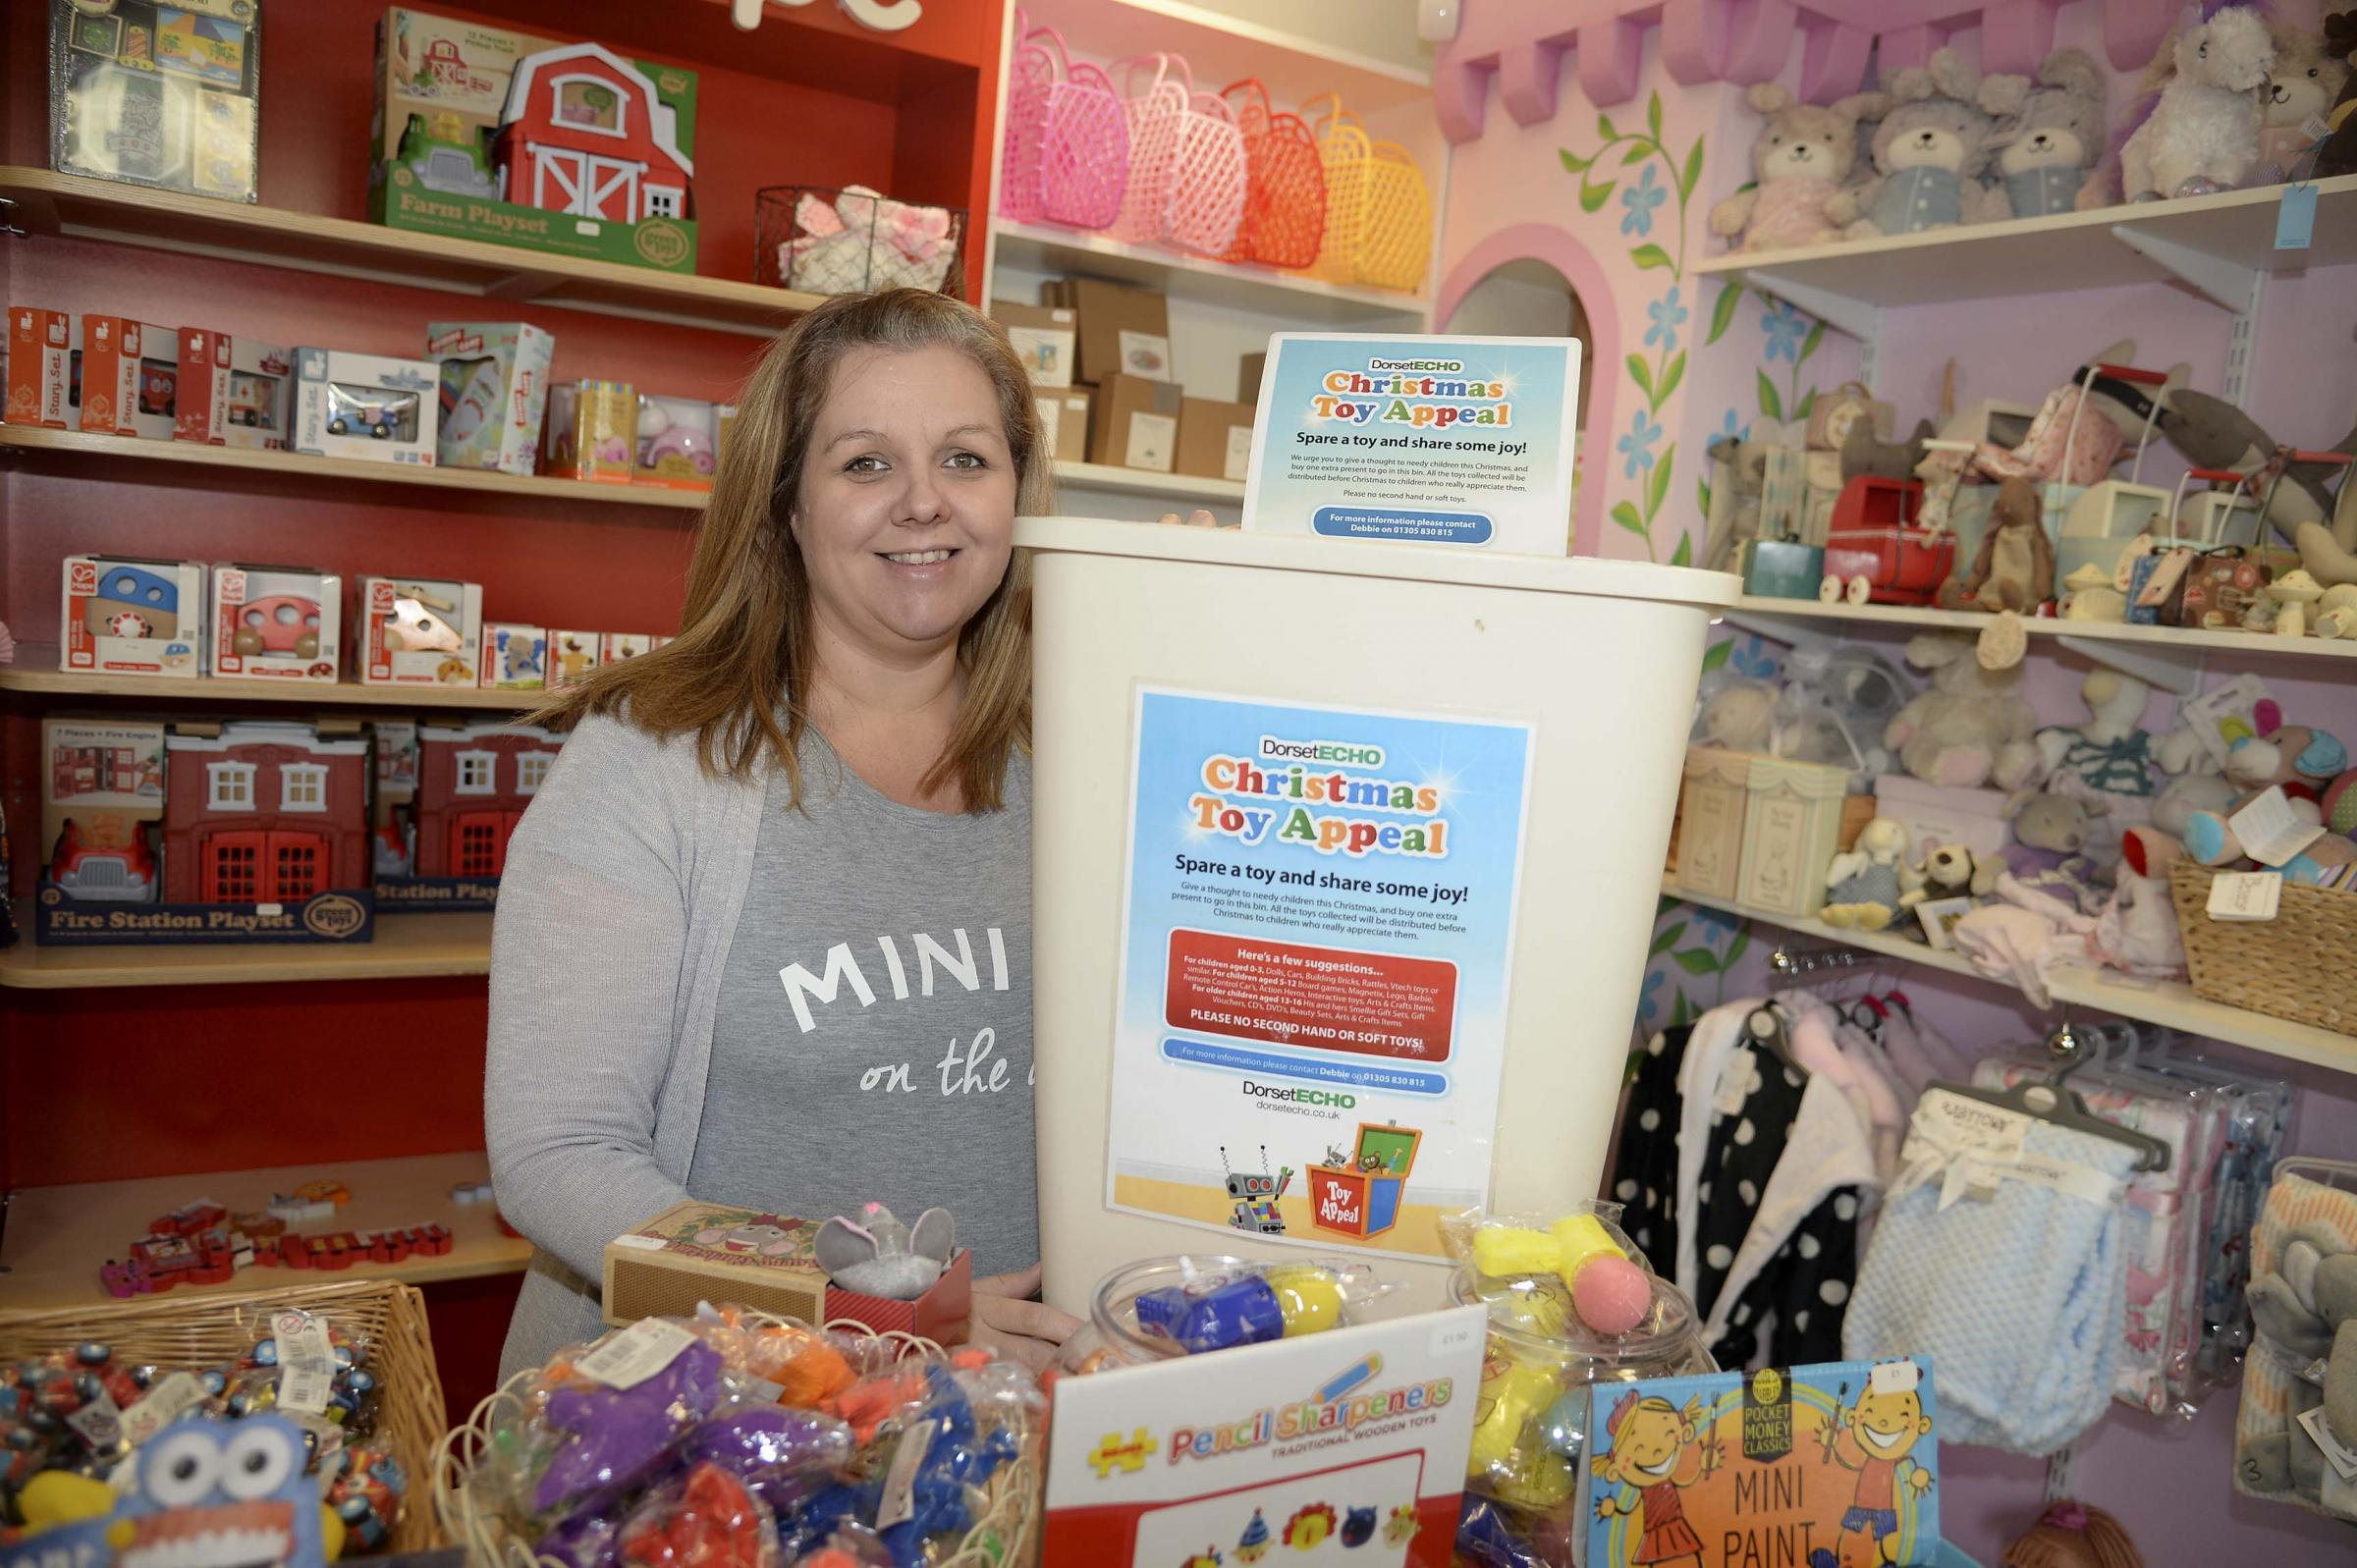 Boo's Toy Shop owner, Charlotte Polley Picture: Finnbarr Webster